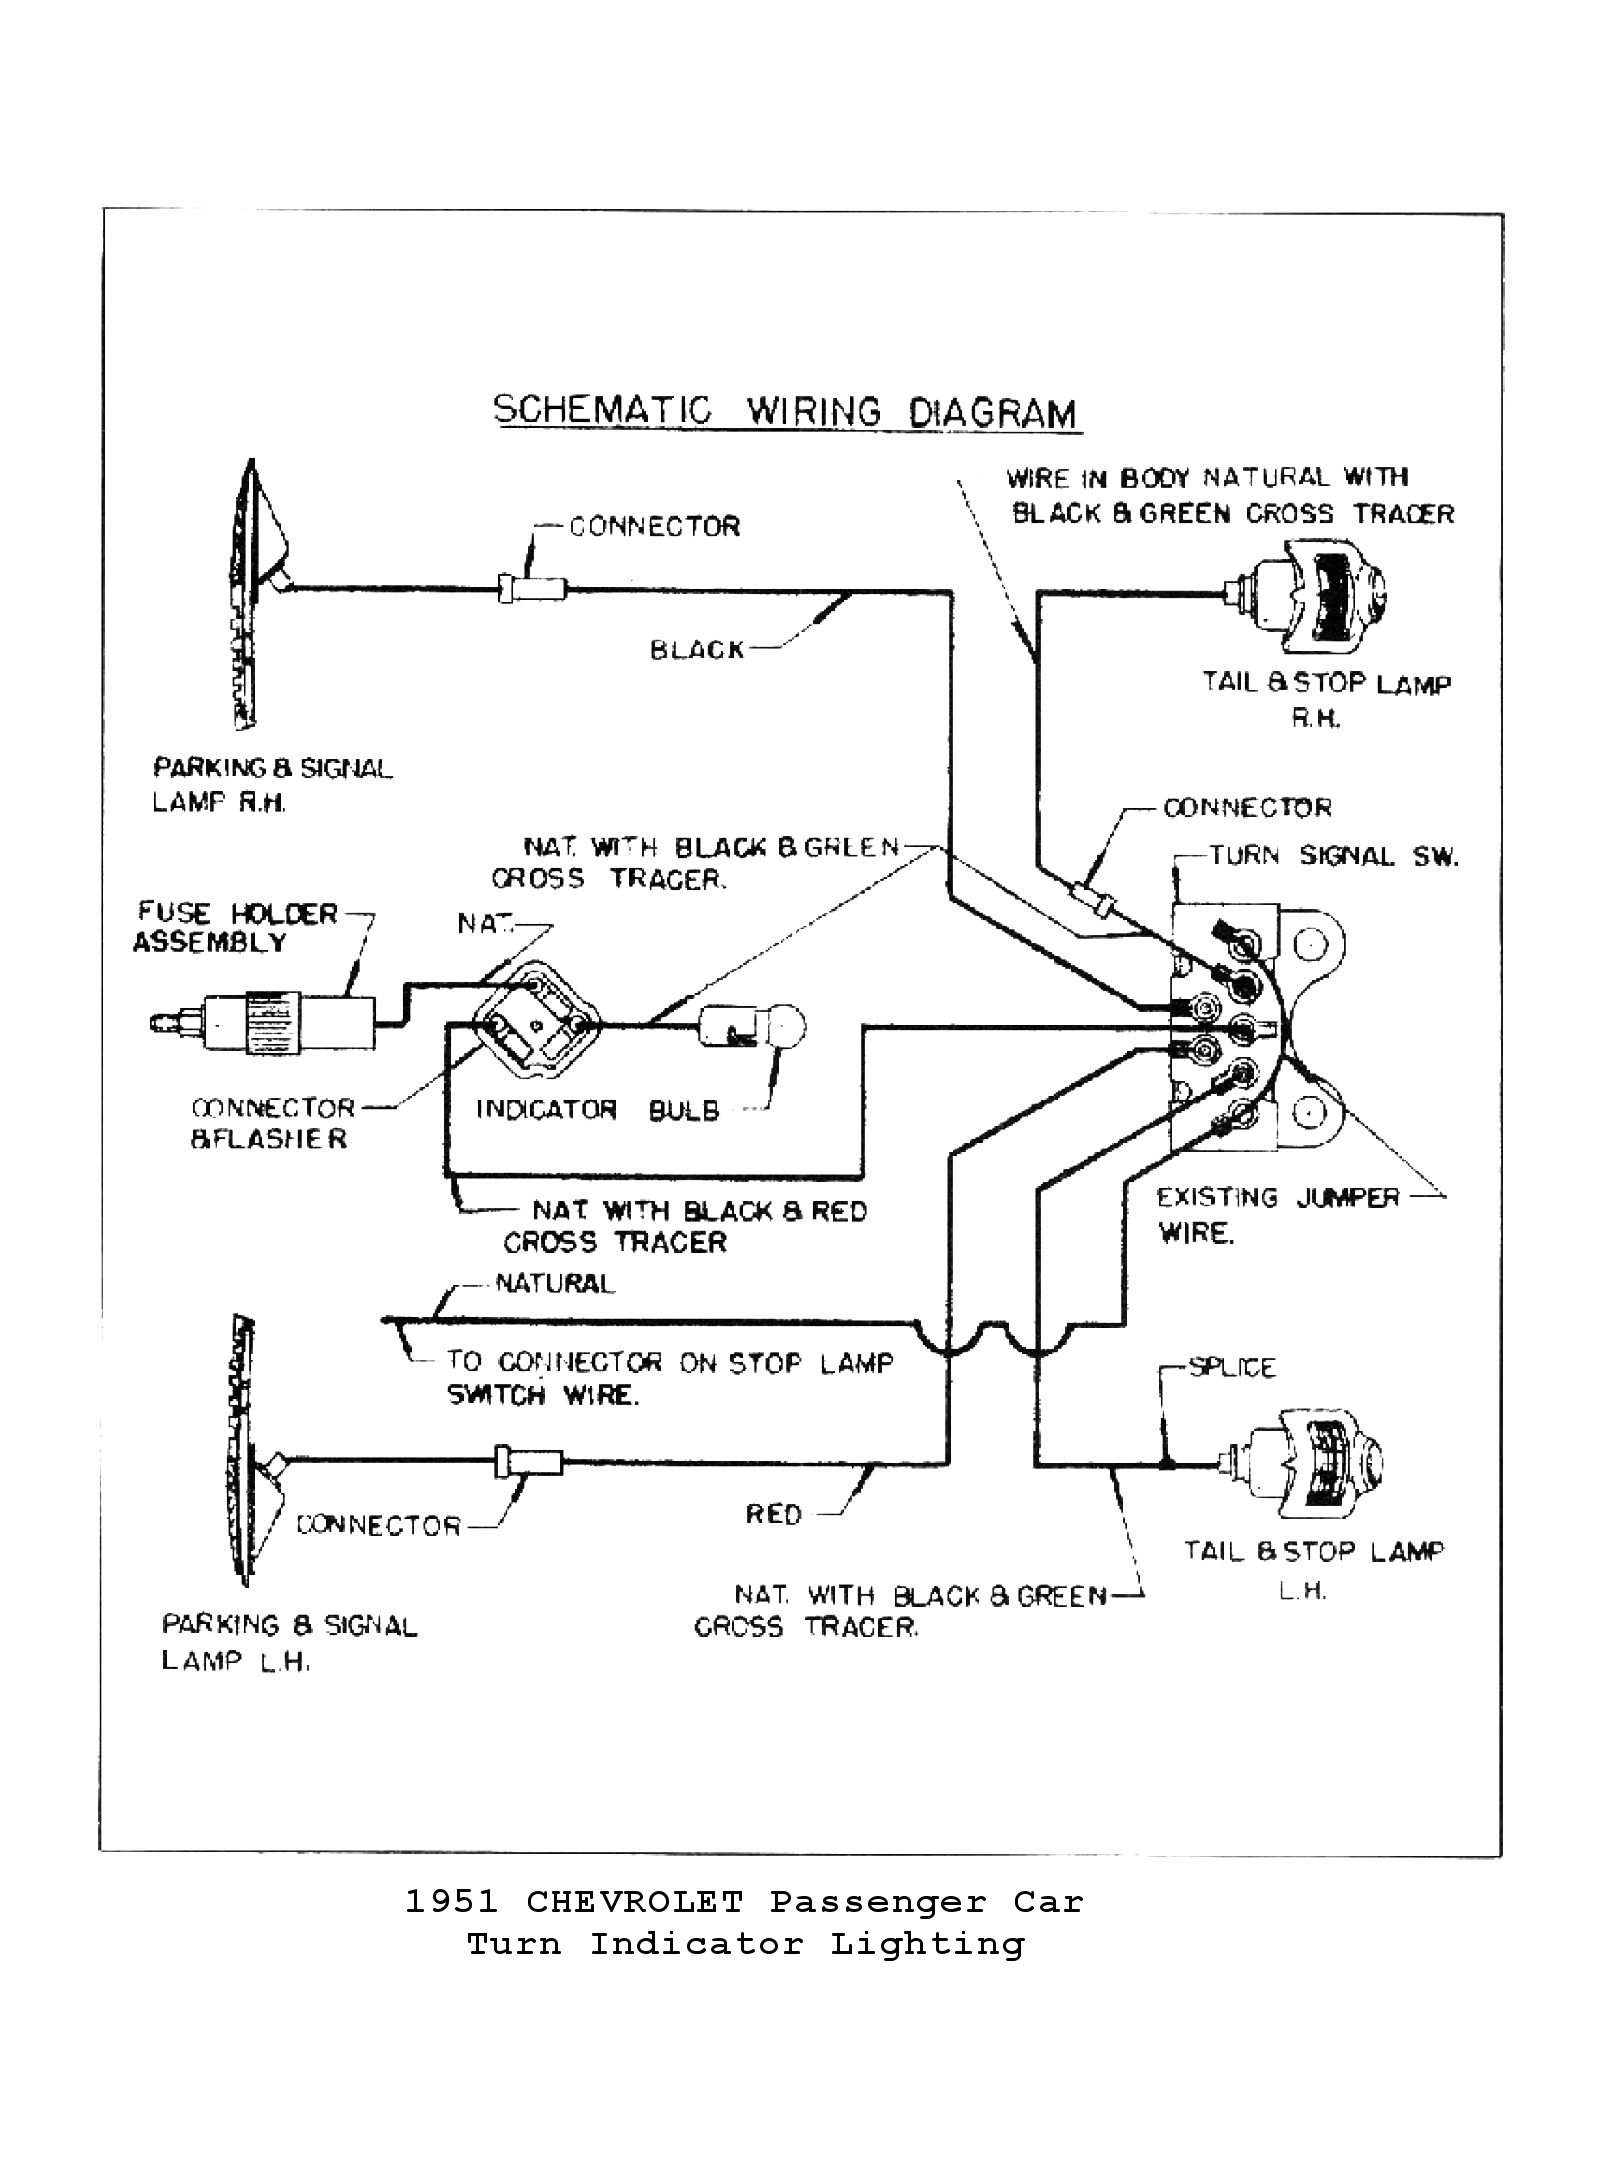 5152turnsignals turn signal wiring diagram turn signal flasher wiring diagram 1955 Chevy Headlight Wiring Diagram at reclaimingppi.co